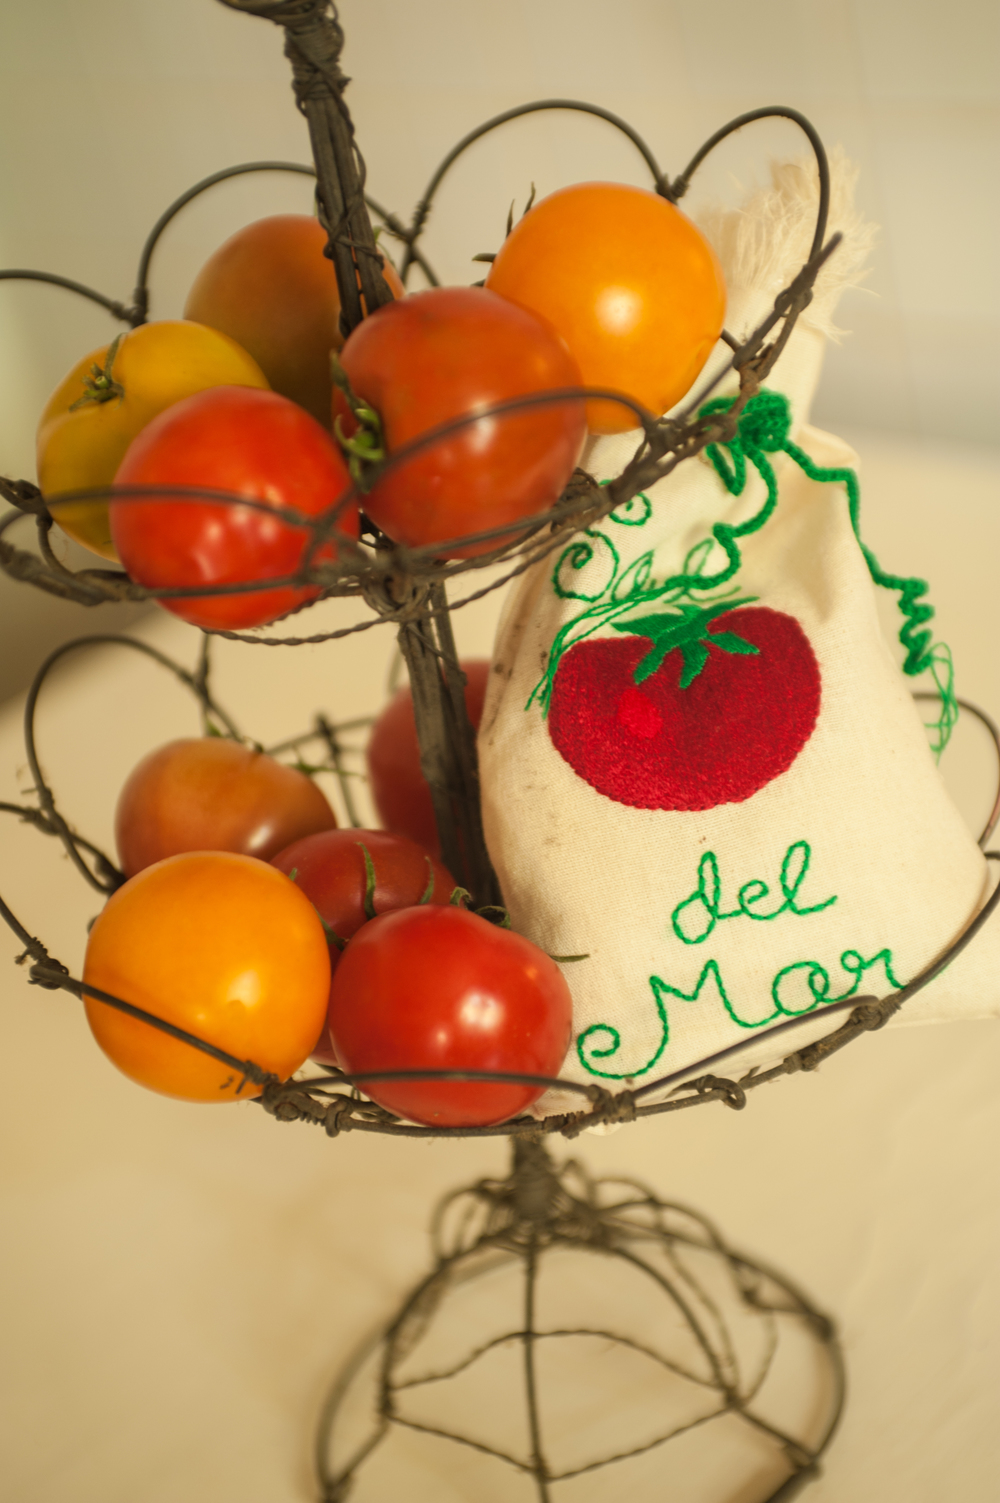 It is that time of year that tomato lovers, love. It's hard to not come home with a basket full. There are many recipes, but somehow a tomatoe just needs a sprinkle of Sal del Mar.